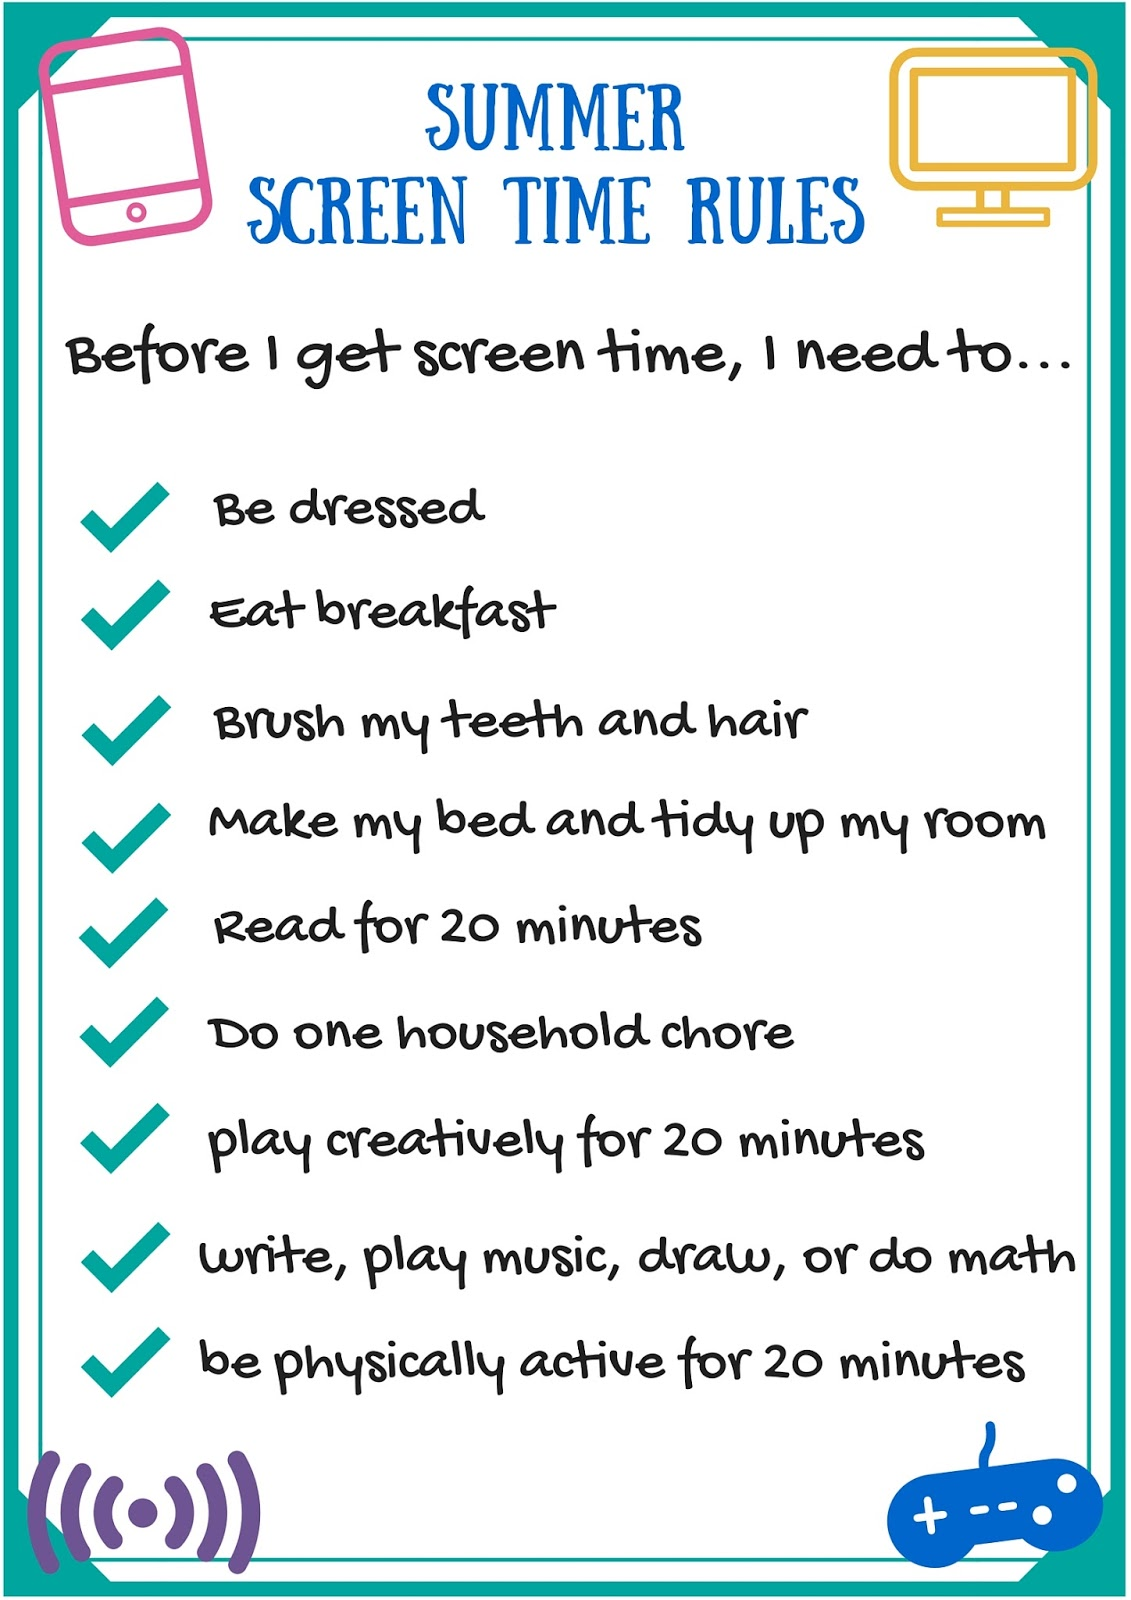 photo about Screen Time Rules Printable called Savvy Investing: No cost \